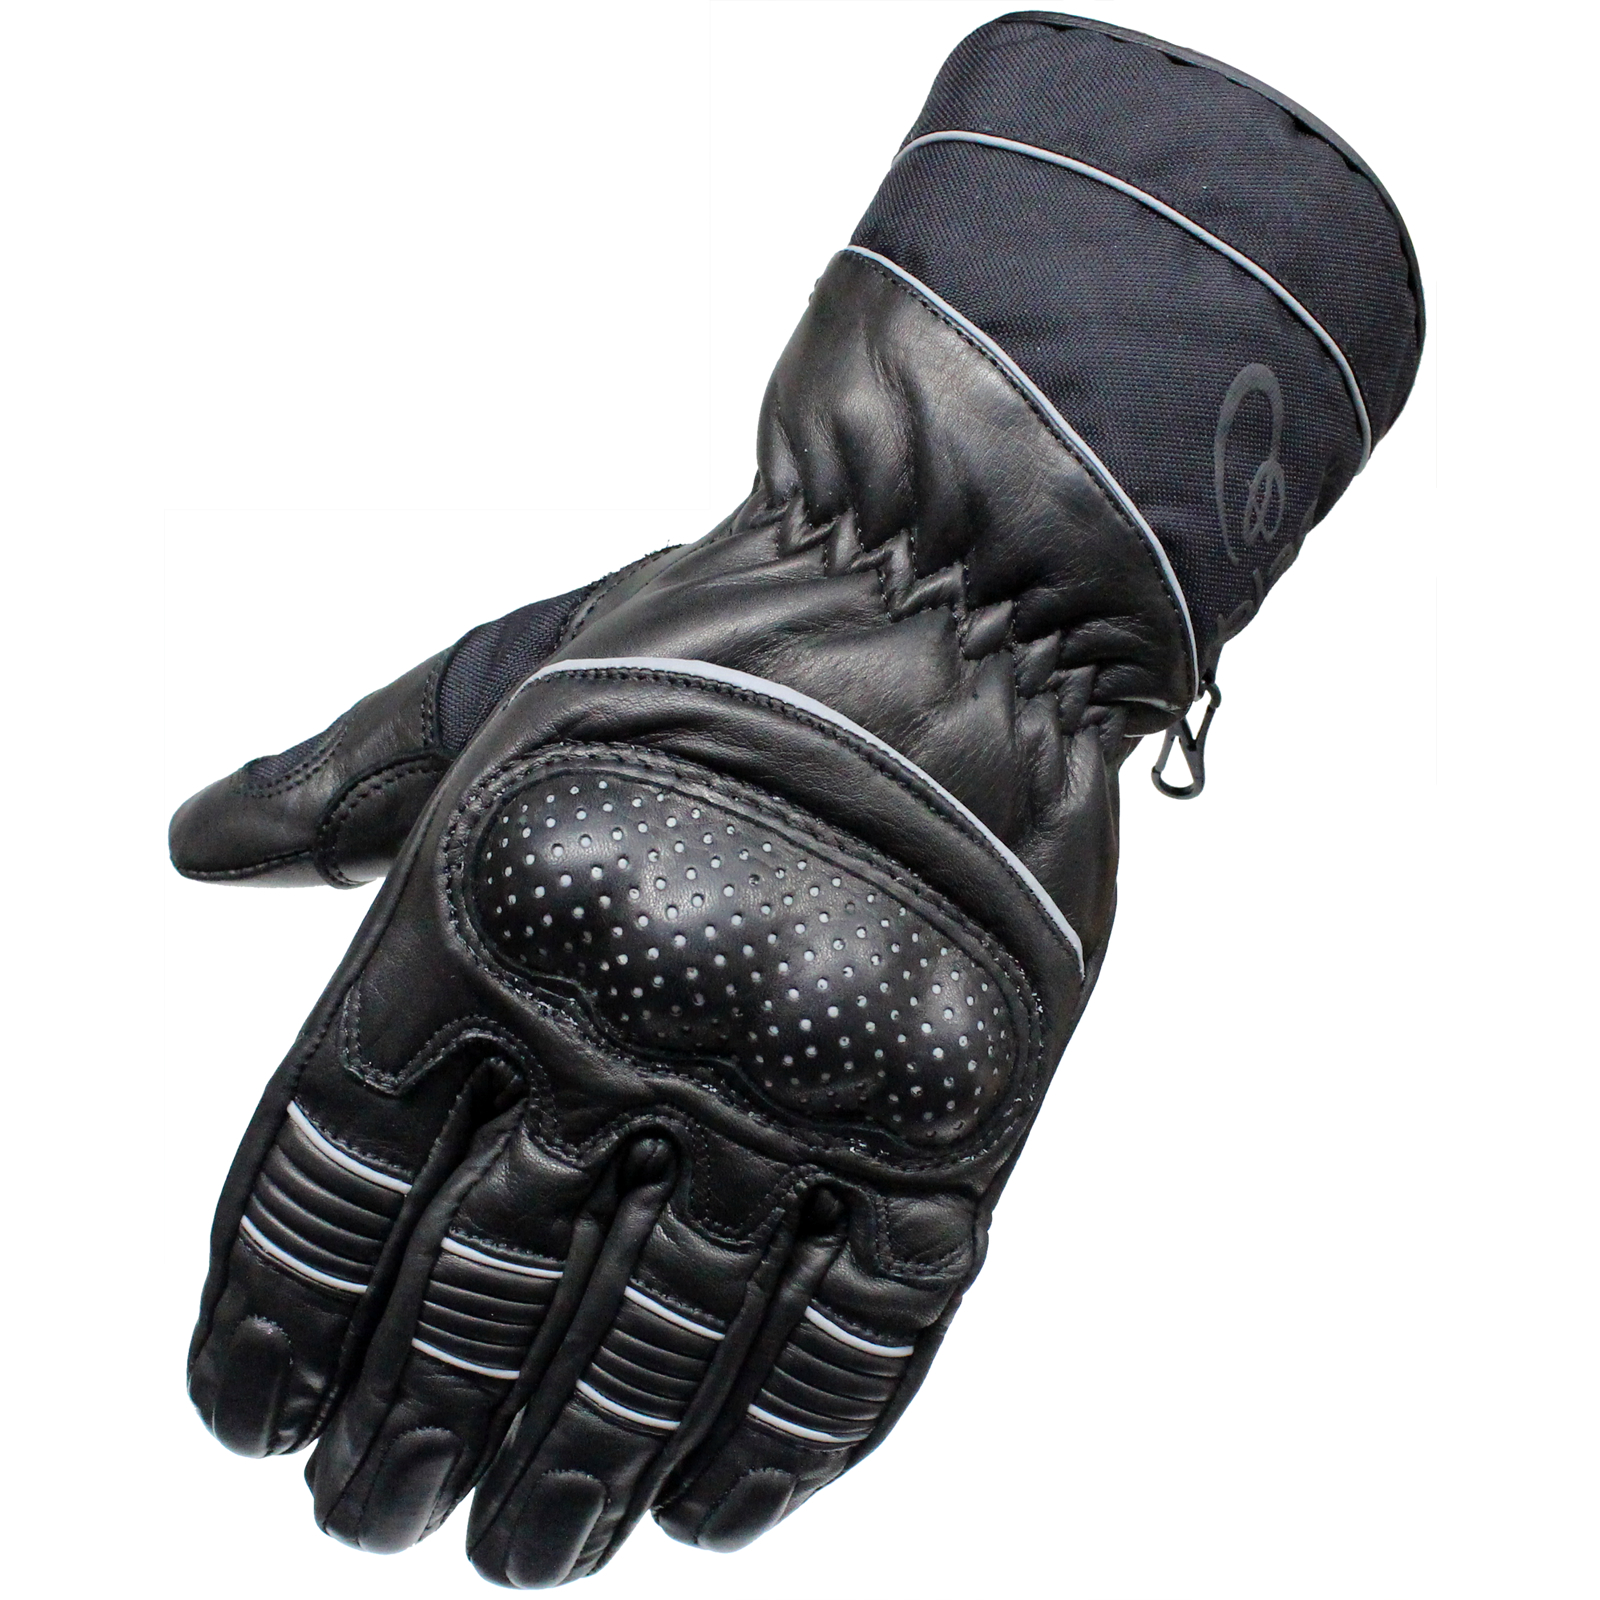 Insulated leather motorcycle gloves - Mens Winter Thermal Waterproof Leather 3m Thinsulate Motorcycle